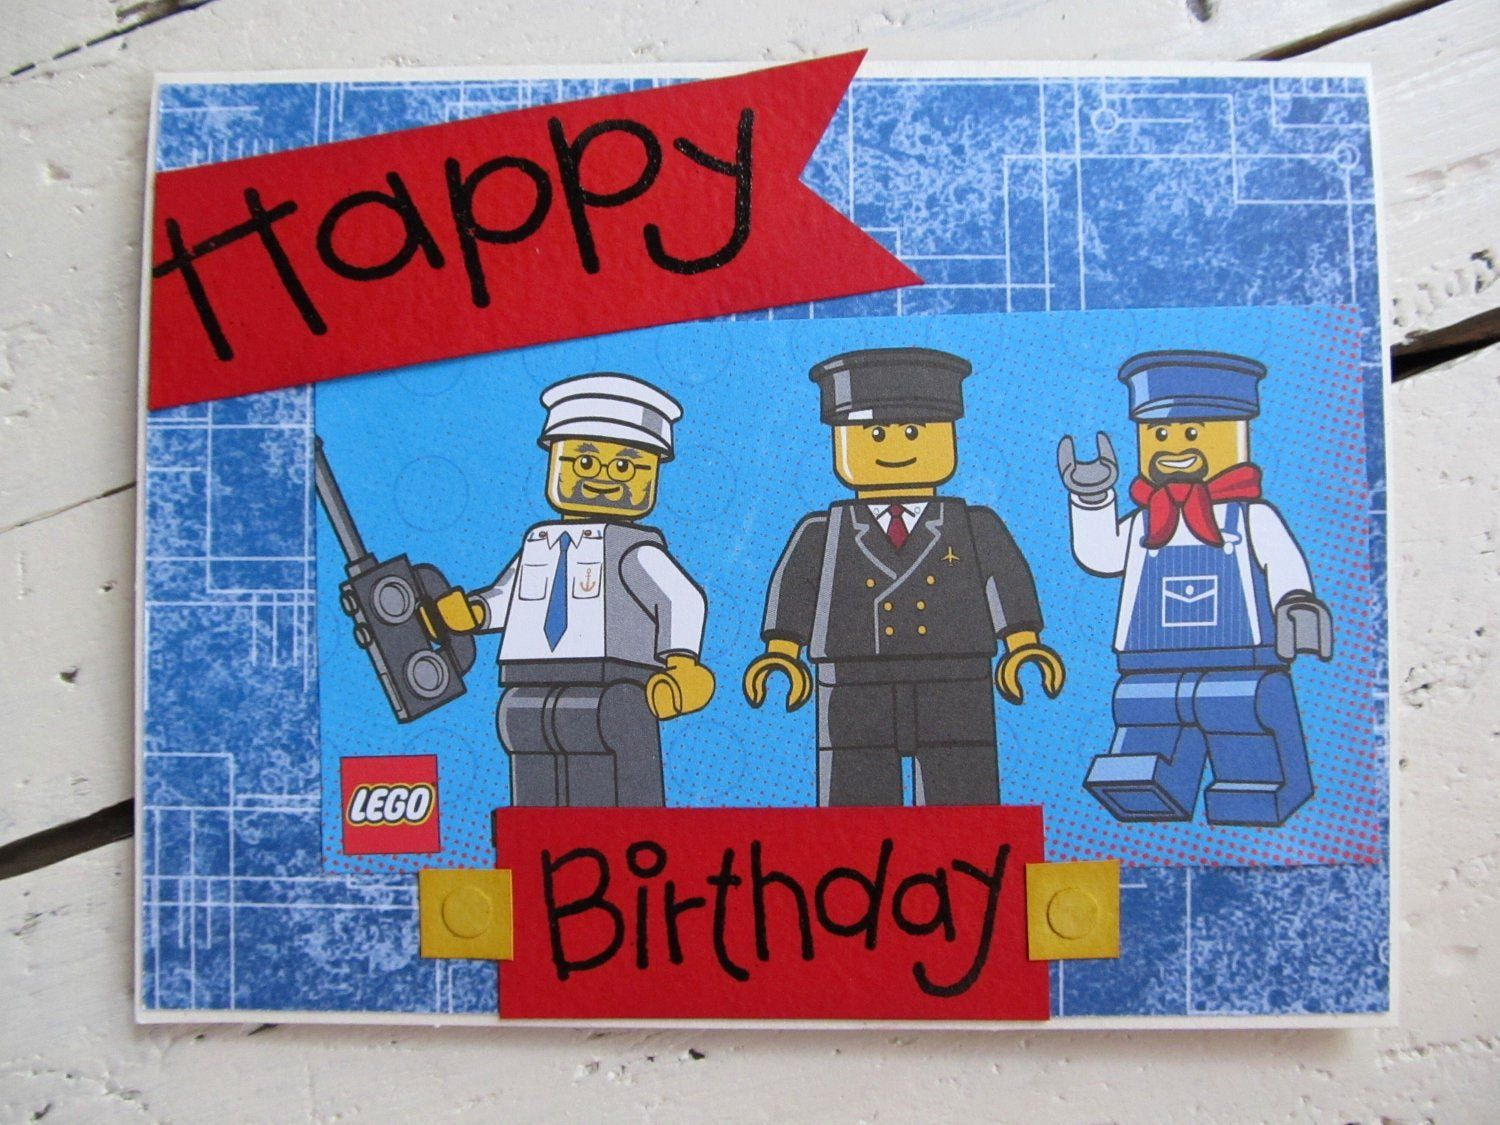 Lego Birthday Card Printable Best Of Lego Birthday Card Happy Birthday By Thecreativecard On Lego Birthday Cards Birthday Card Printable Birthday Card Pictures